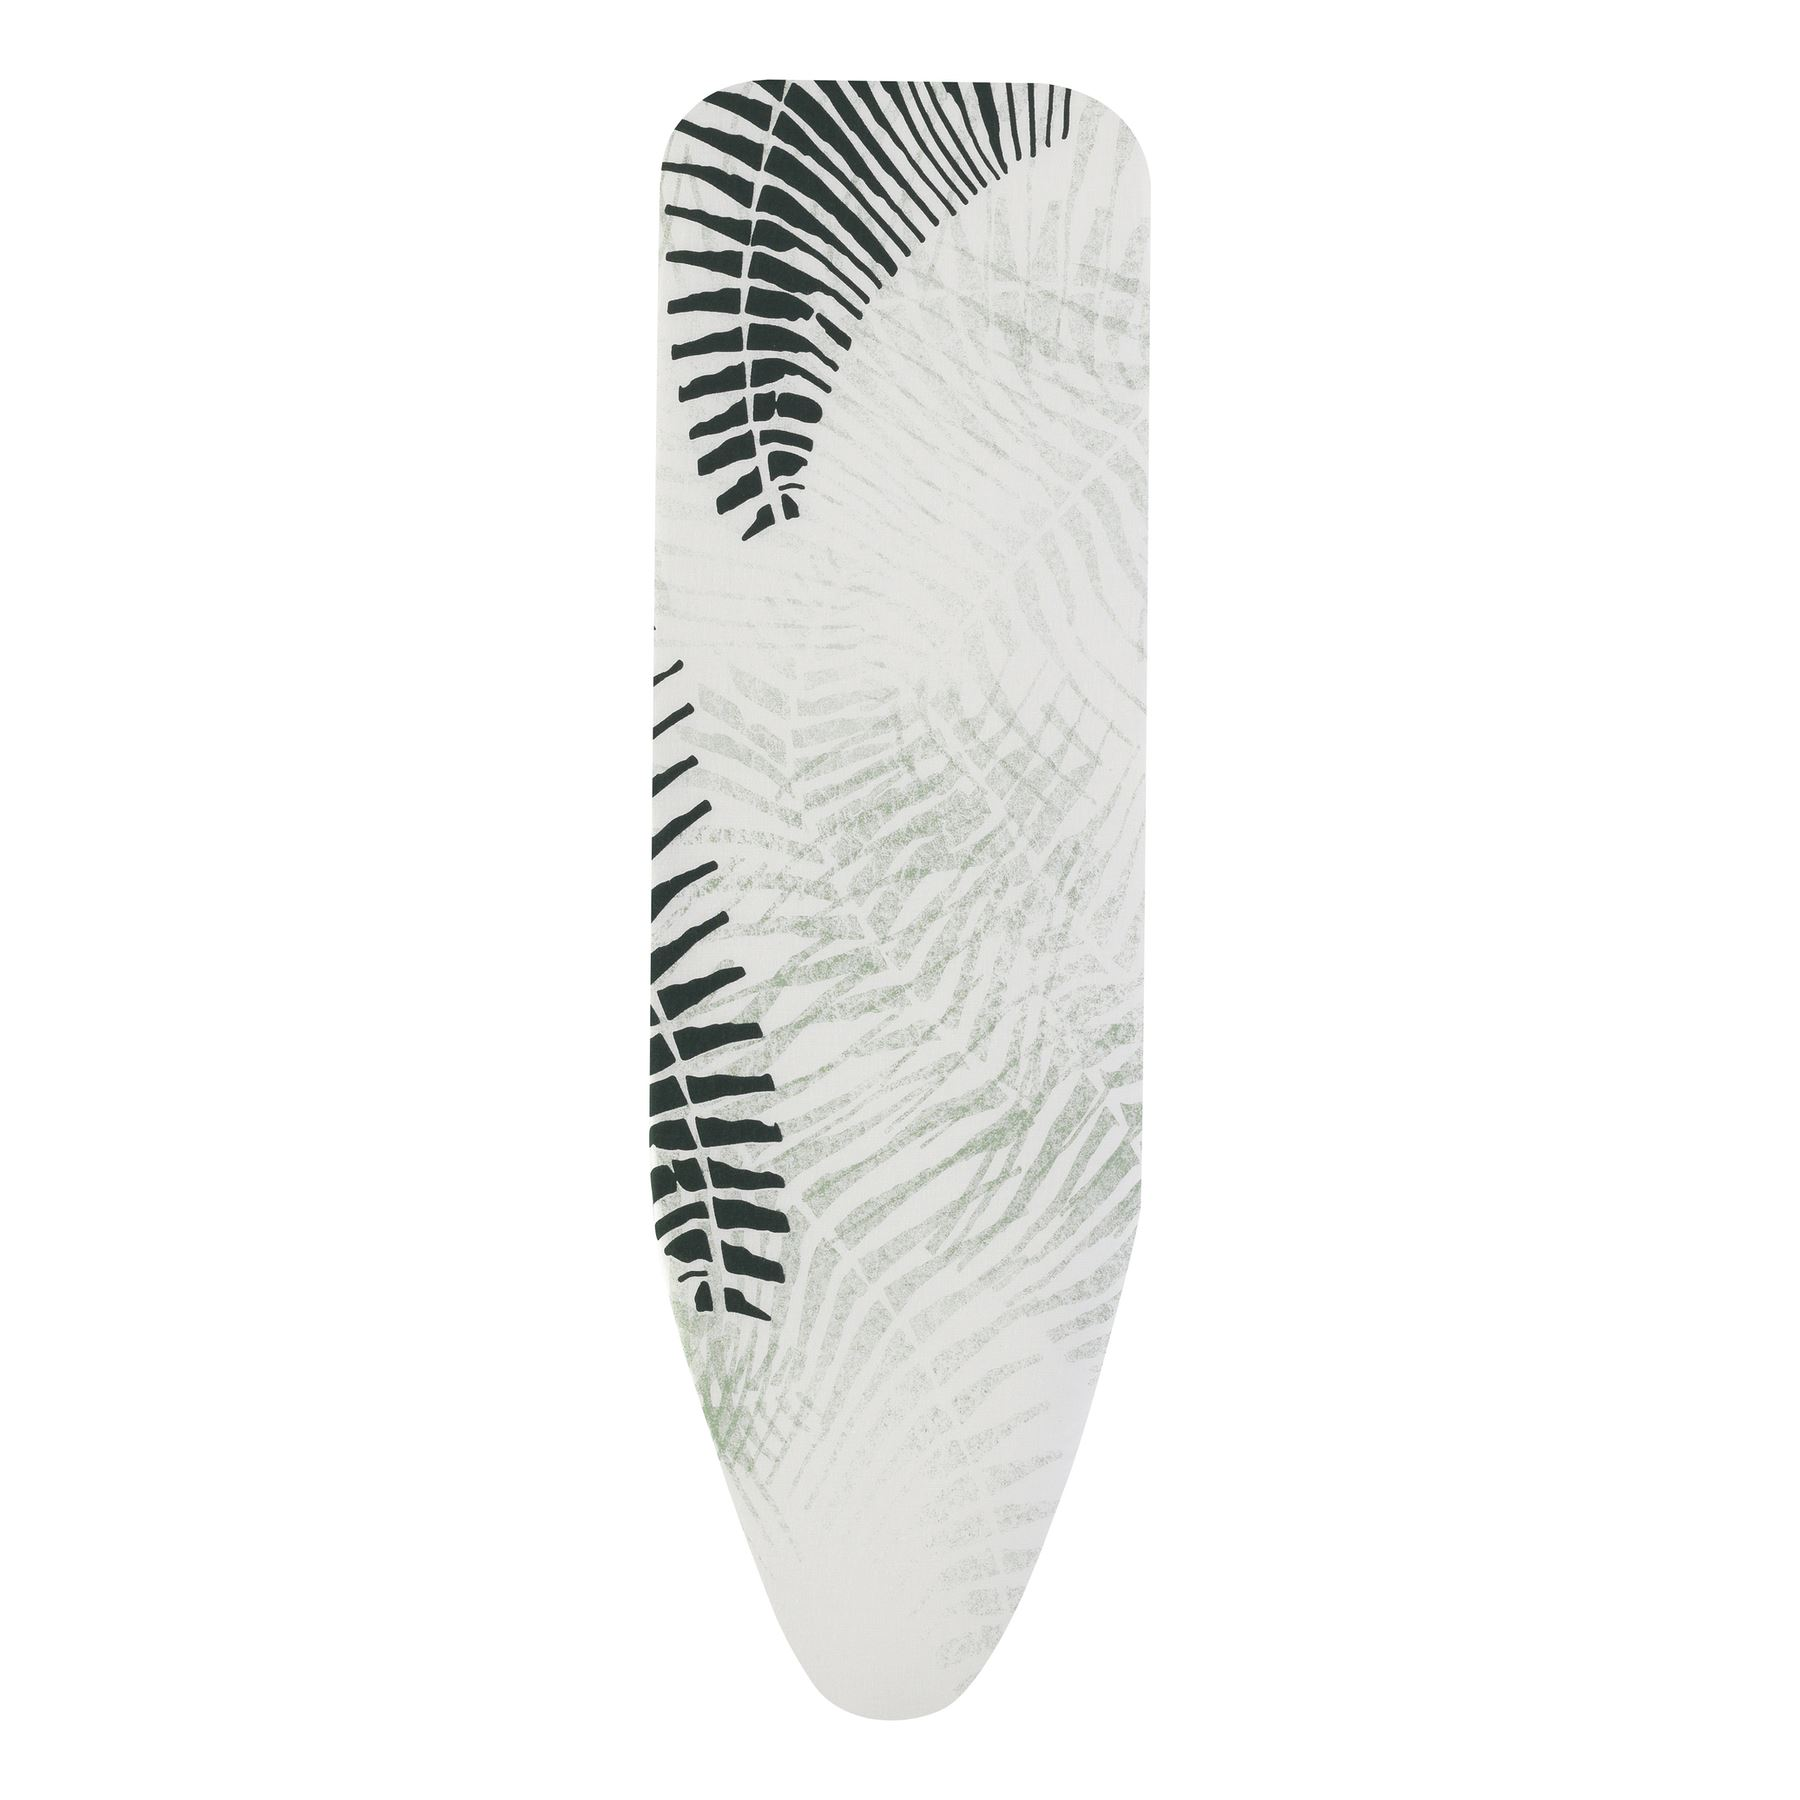 Brabantia-Replacement-Ironing-Board-Table-Cover-Size-B-124x38cm-All-Designs miniatuur 7